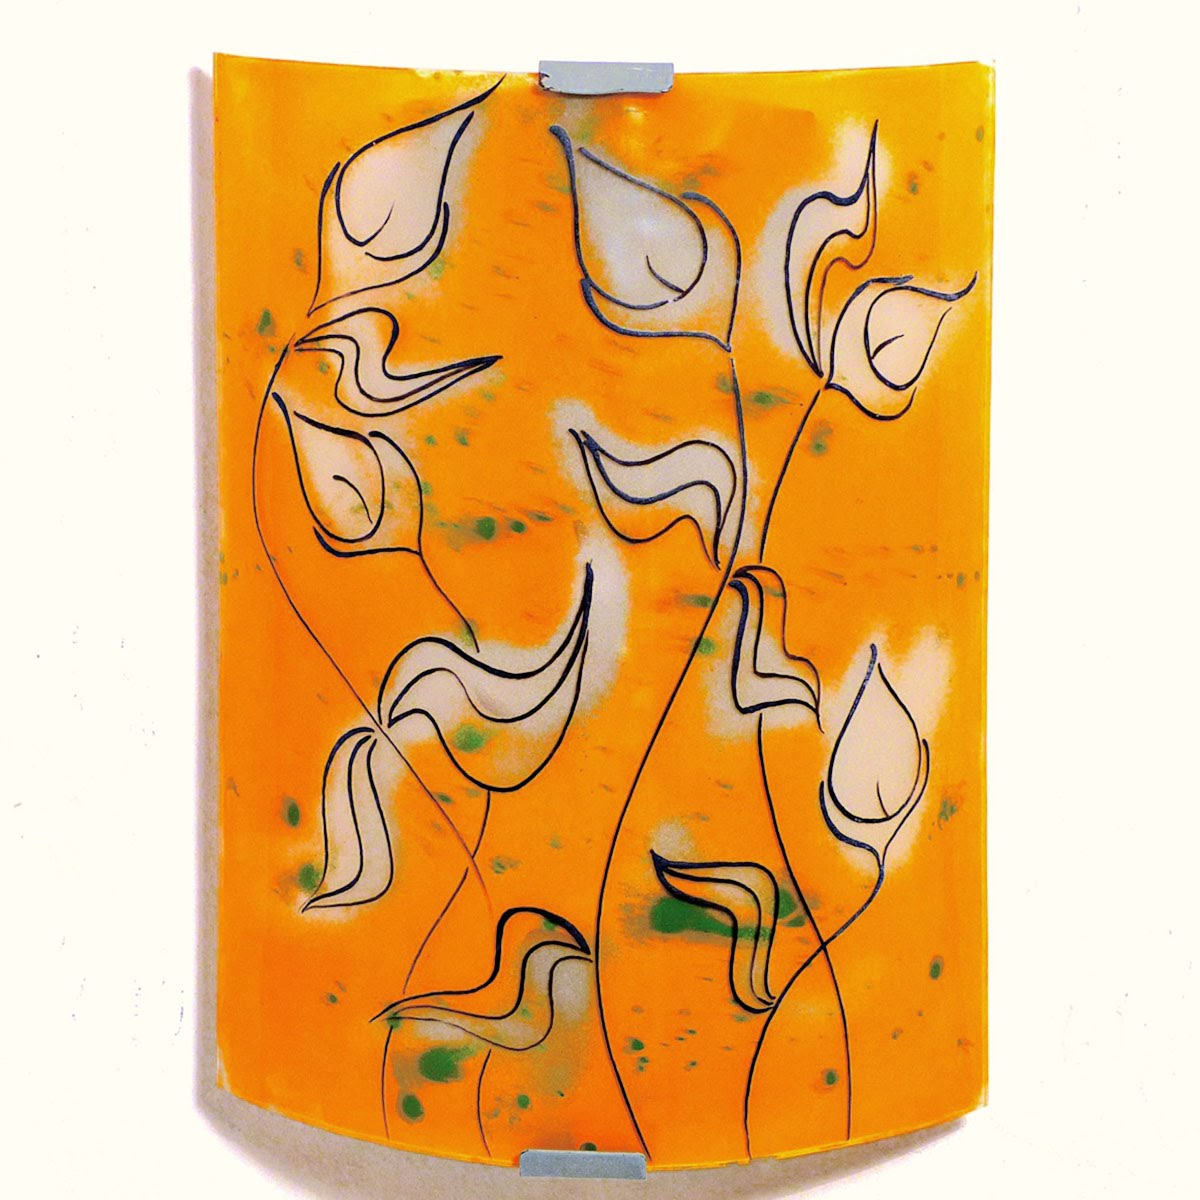 Applique murale artisanale orange motif la danse des arums 2